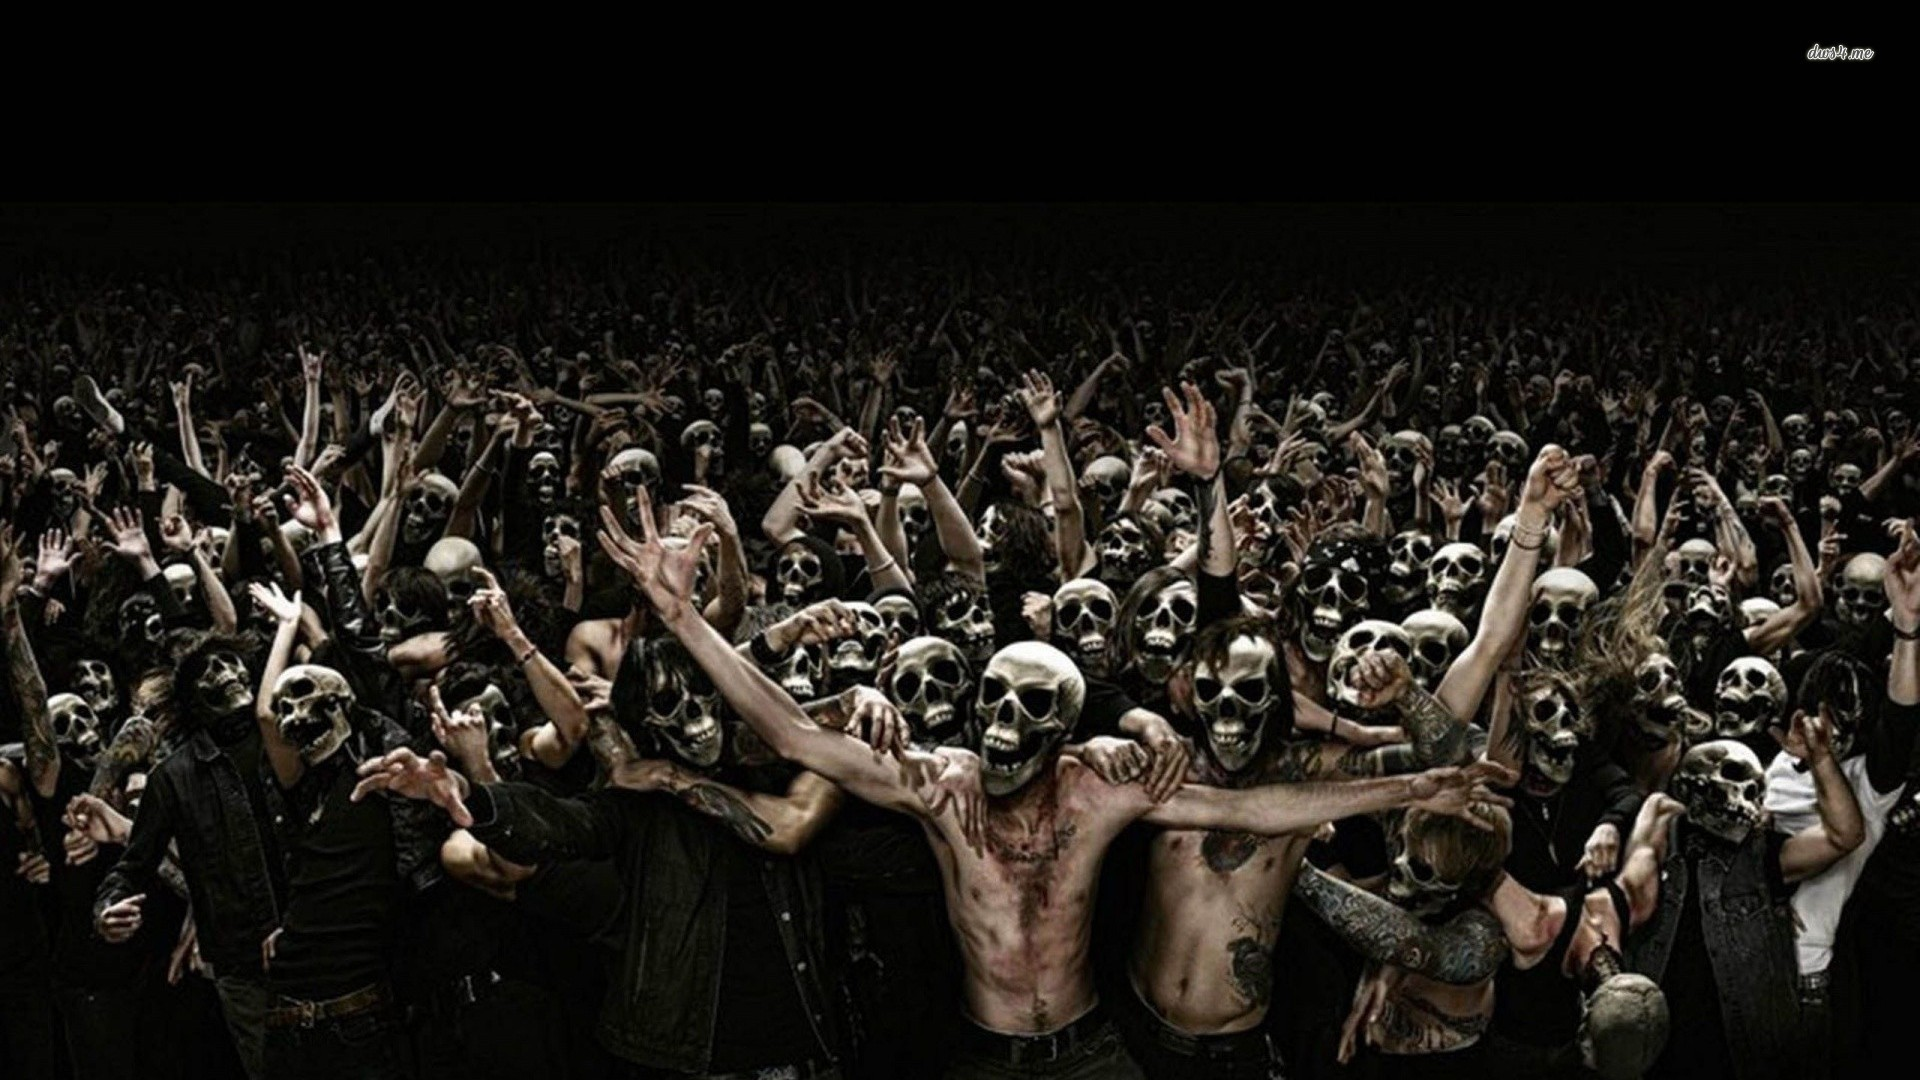 Zombie wallpapers hd impremedia 1920x1080 mass zombie attack wallpaper hd cute wallpapers voltagebd Gallery